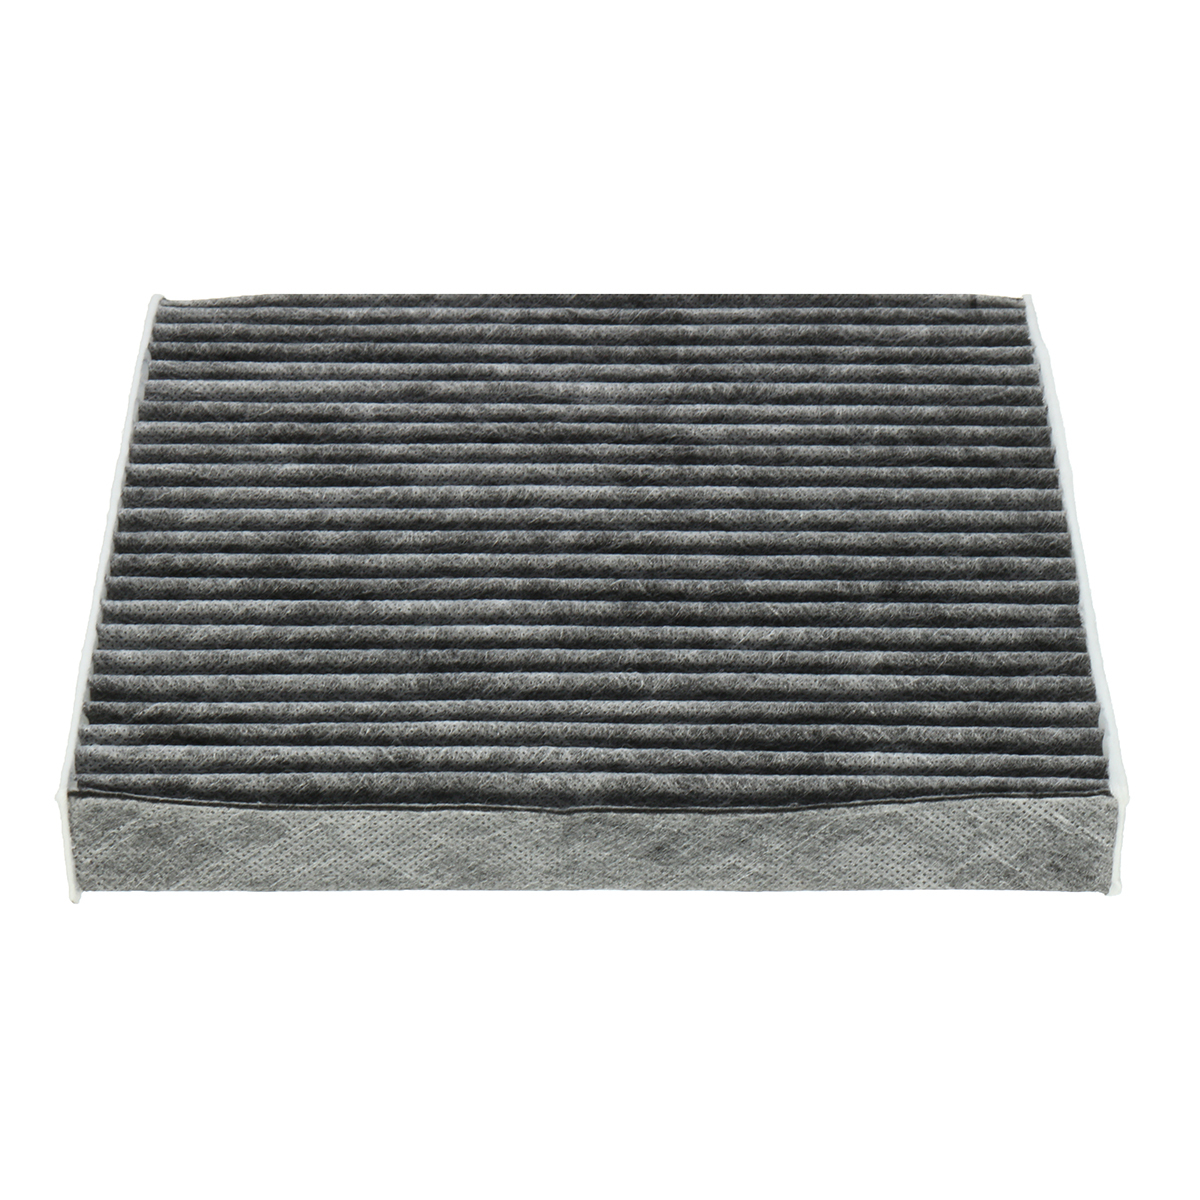 ac cabin air filter for toyota camry rav4 yaris corolla 87139 07010 87139 yzz08 ebay. Black Bedroom Furniture Sets. Home Design Ideas